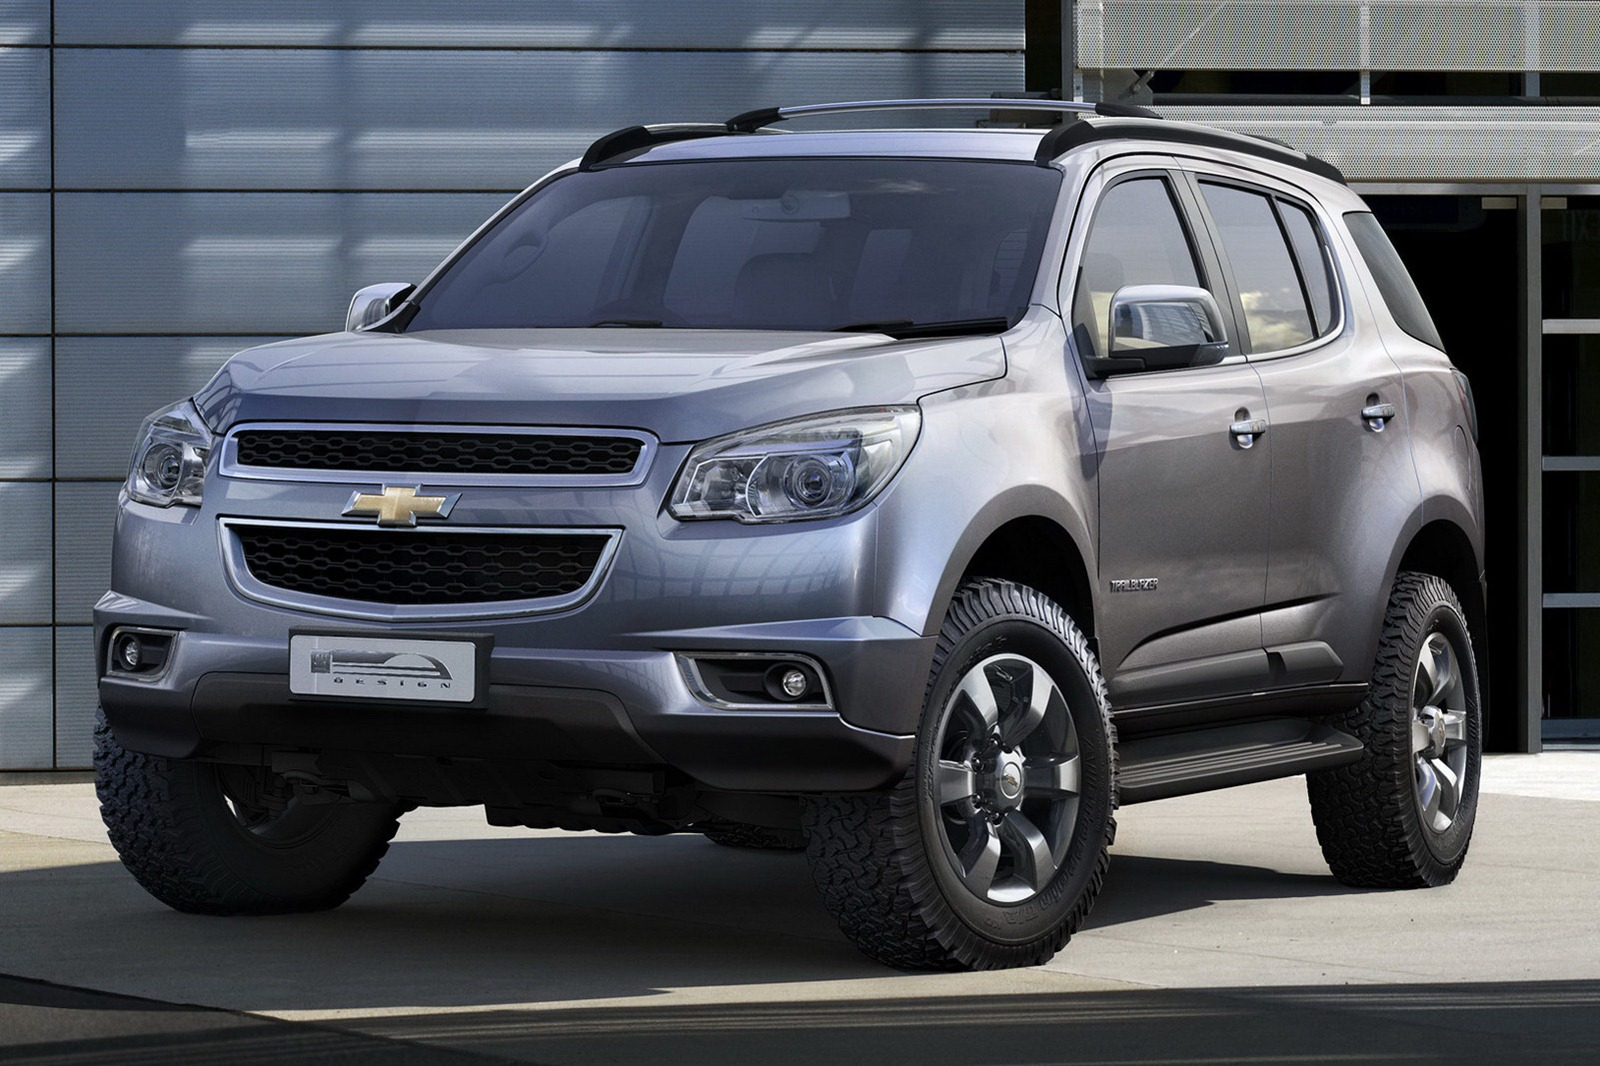 Chevrolet Trailblazer 2012 foto - 4